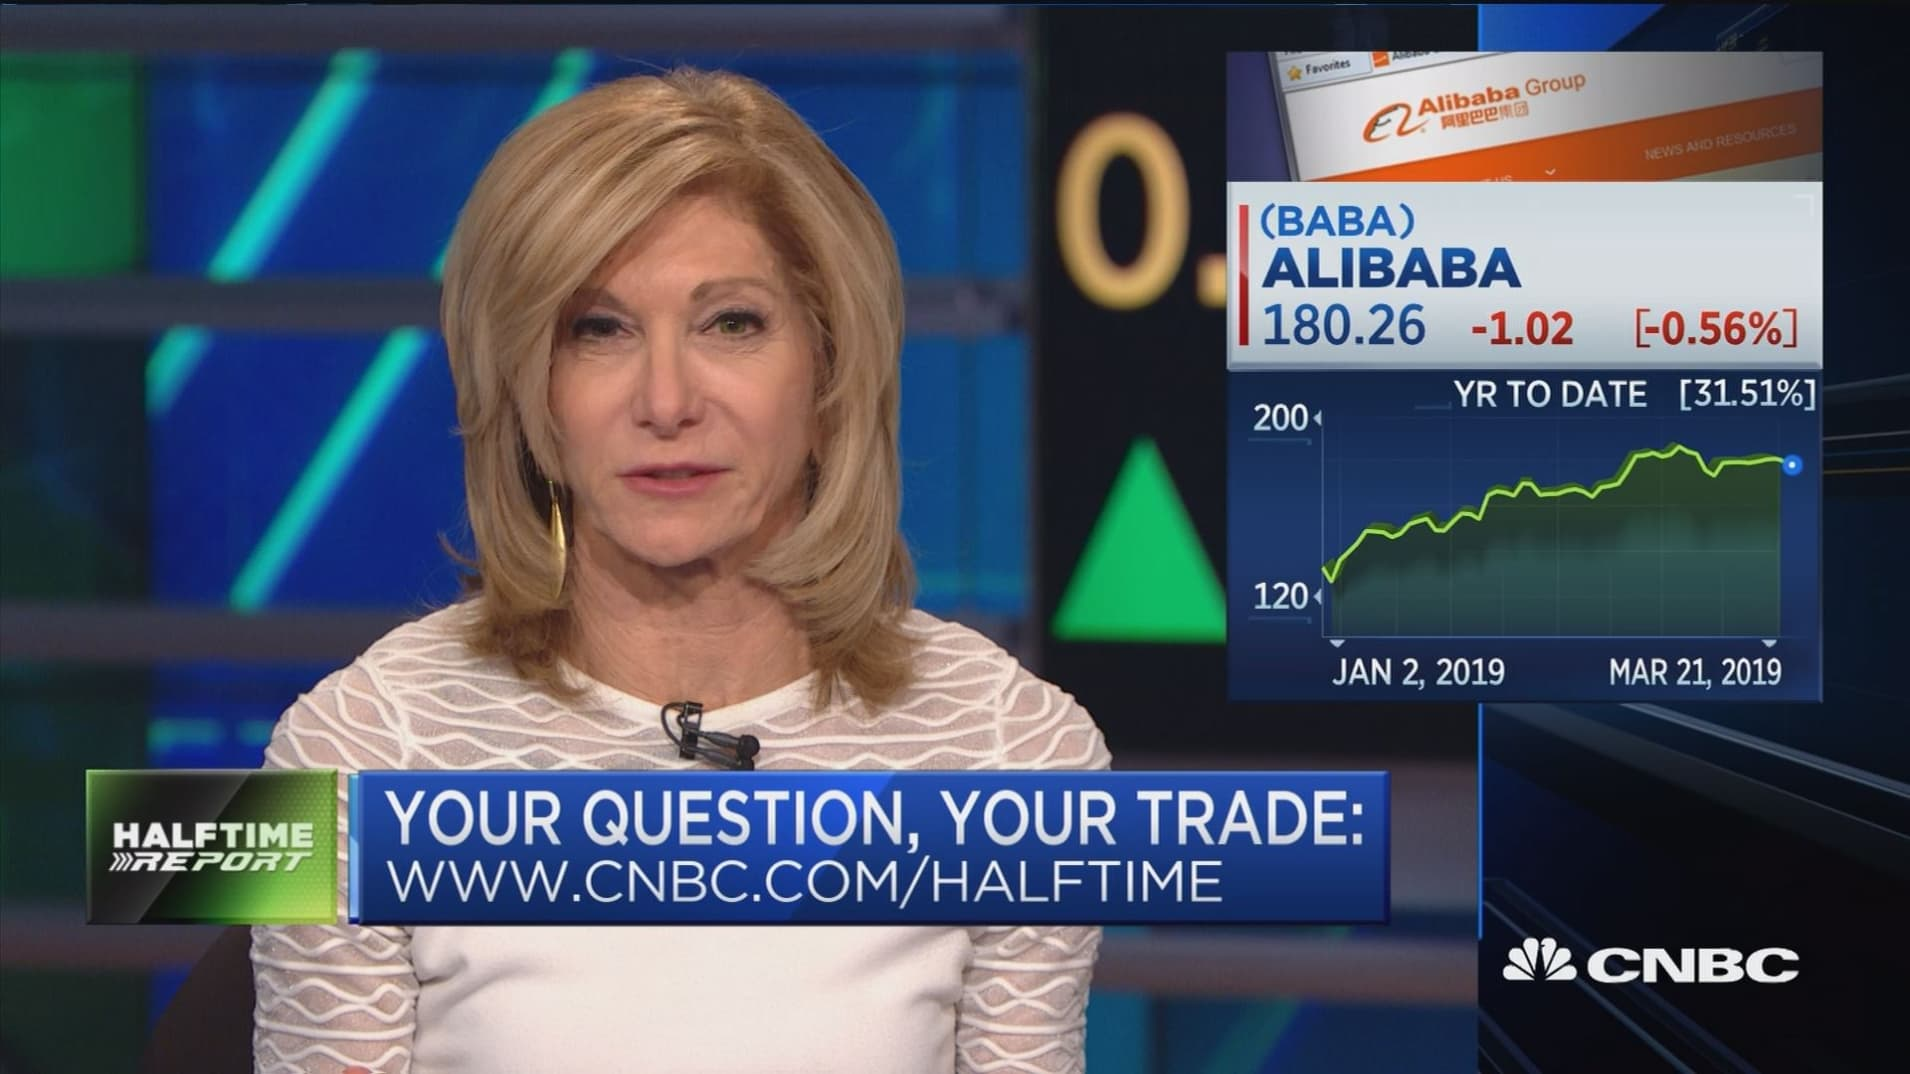 Is Alibaba a buy? Hold or sell General Mills? What's the deal with eBay? That and more in #AskHalftime